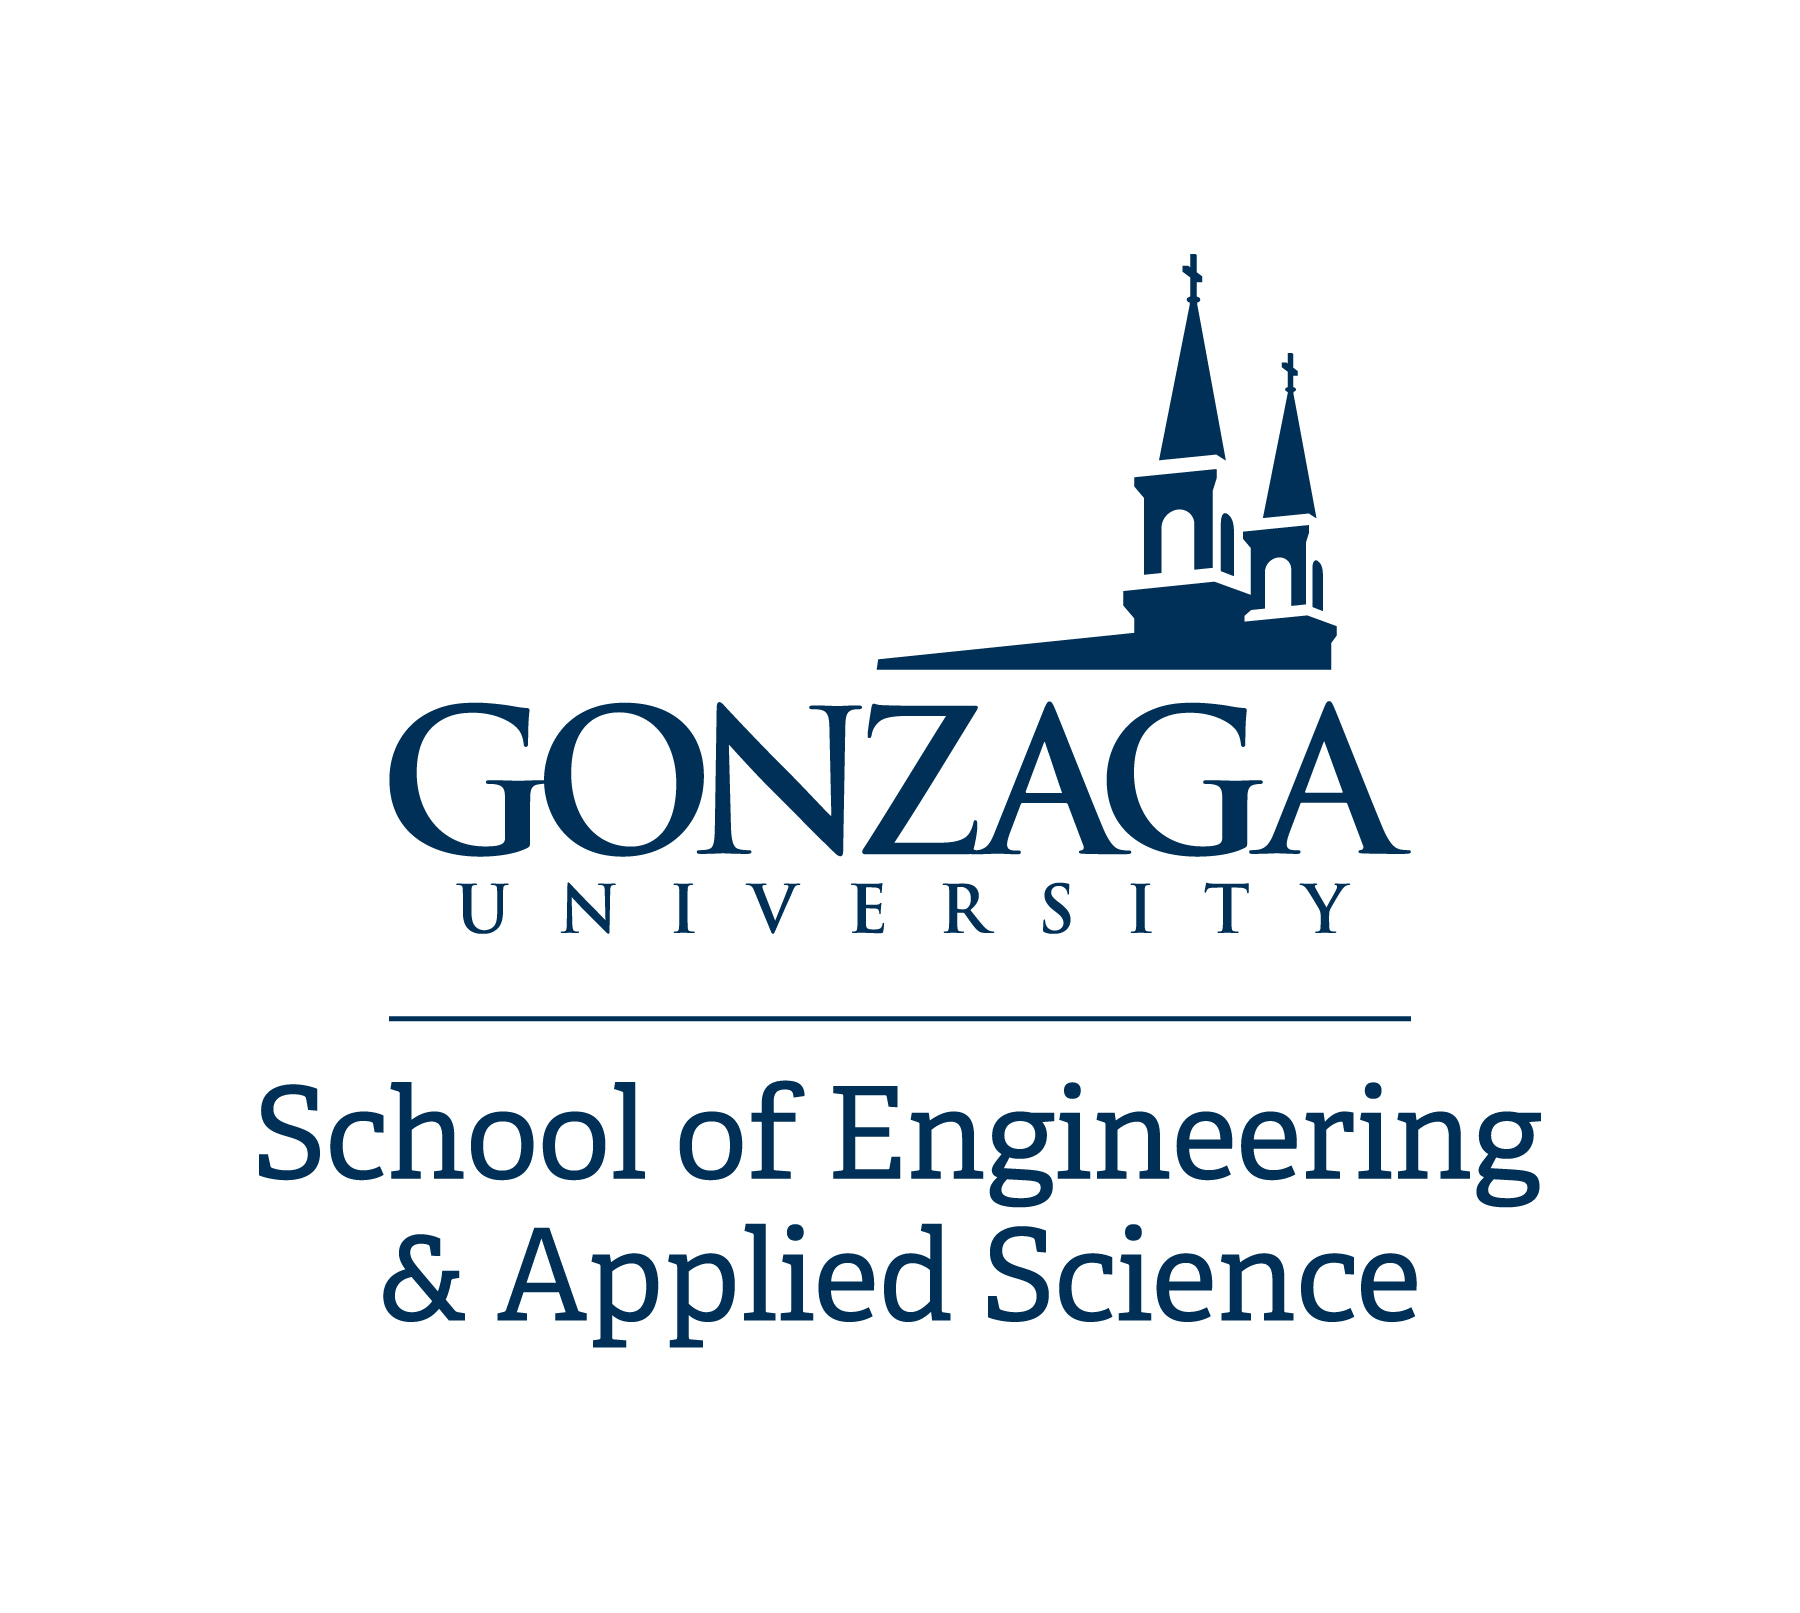 Gonzaga University School of Engineering and Applied Science